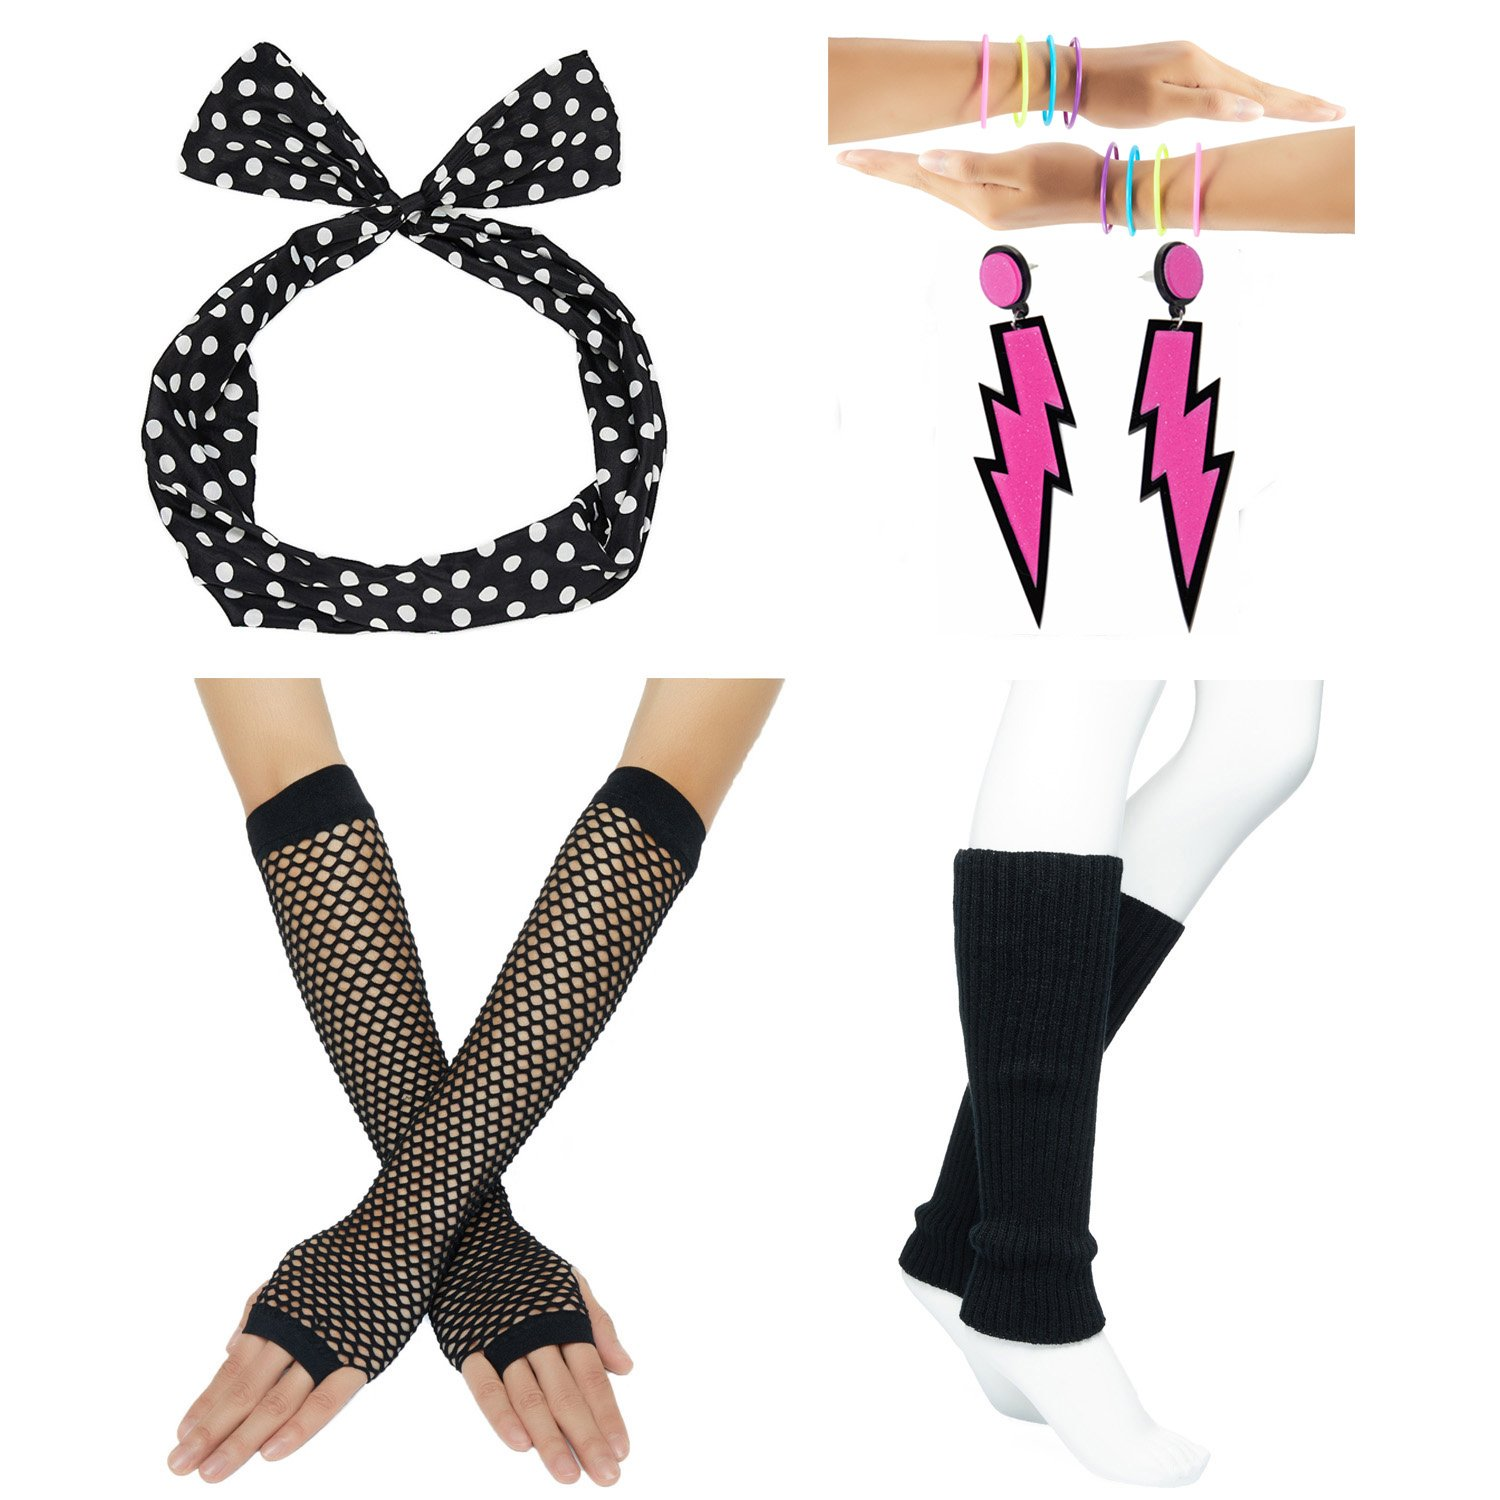 80s Fancy Outfit Costume Accessories Set,Leg Warmers,Fishnet Gloves,Neon Earrings and Bowknot Headband